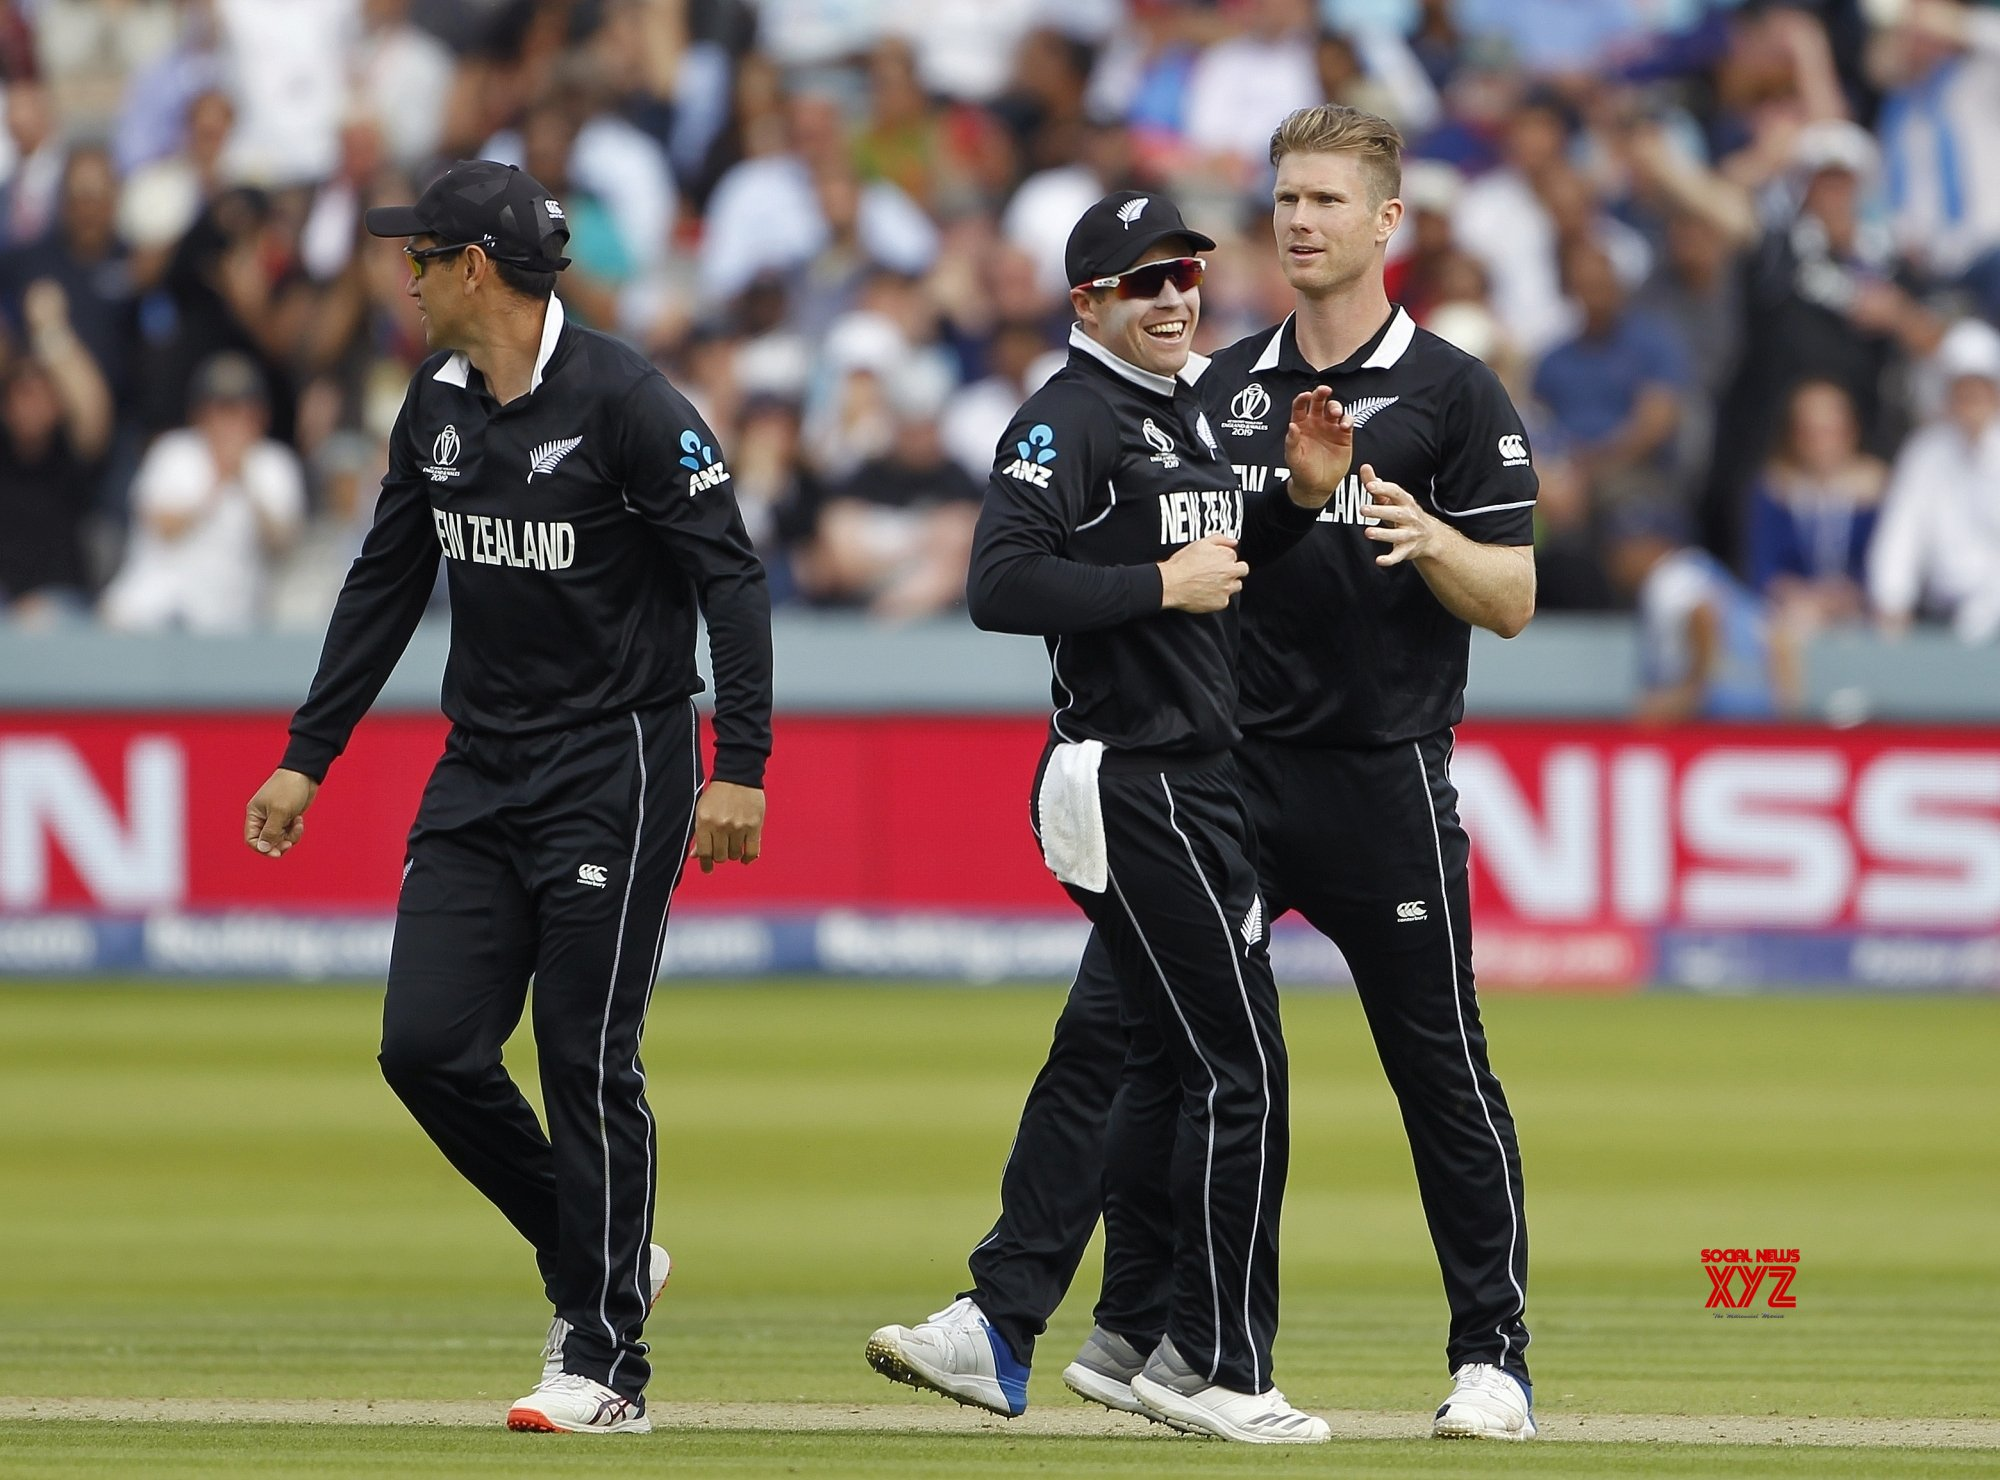 London (England): 2019 World Cup - Final - New Zealand Vs England (Batch - 40) #Gallery